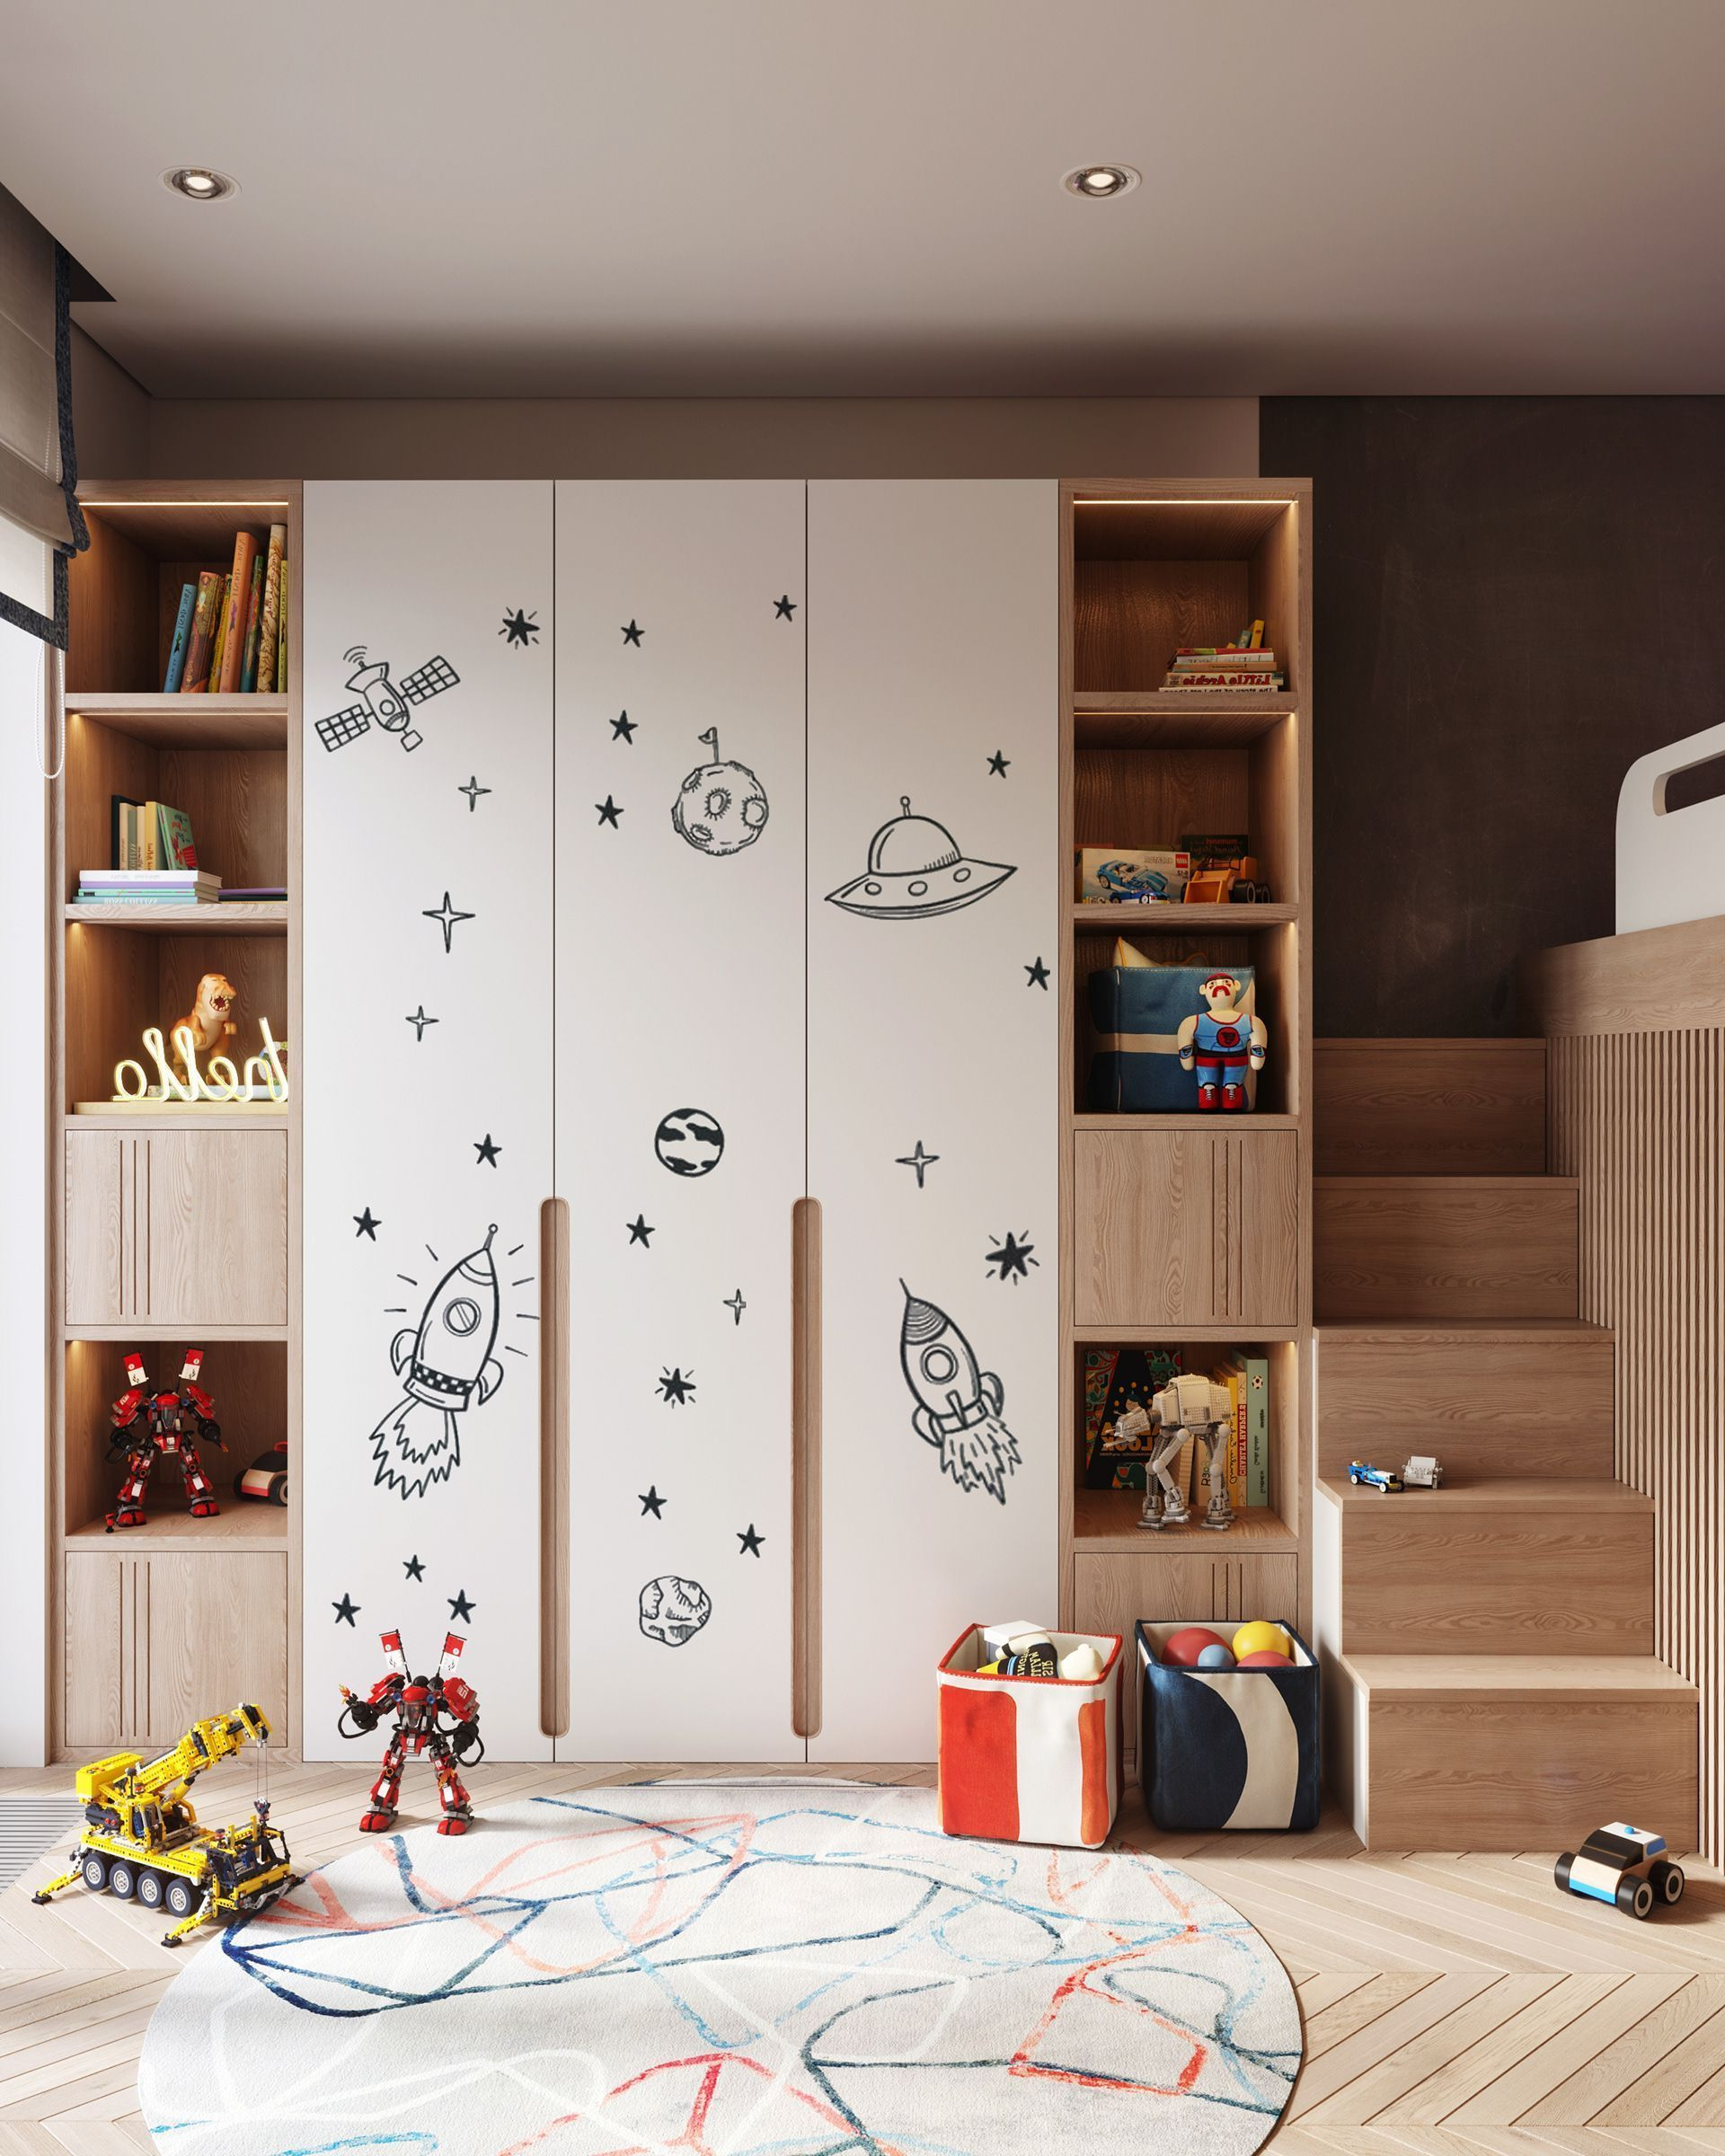 14 Tips For Choosing Furniture For Children S Rooms Plus Photos Decor Around The World Kids Interior Room Kids Bedroom Designs Kids Room Interior Design Choosing kids bedroom furniture